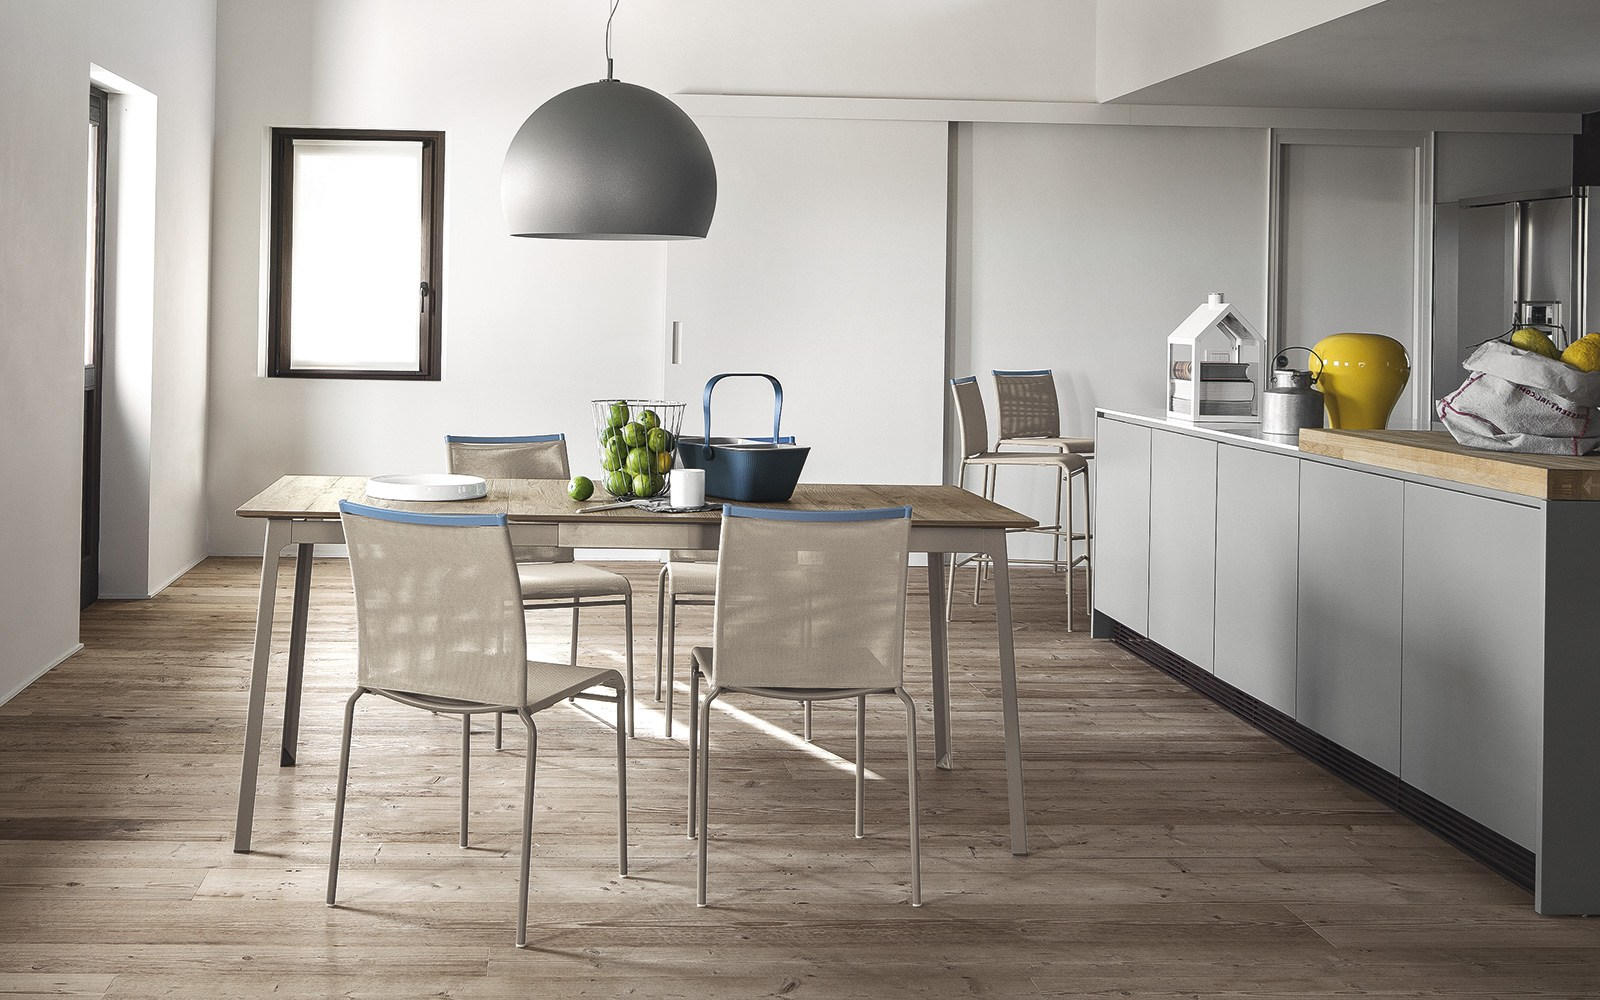 Web sedia in rete by calligaris design archirivolto for Calligaris sedie